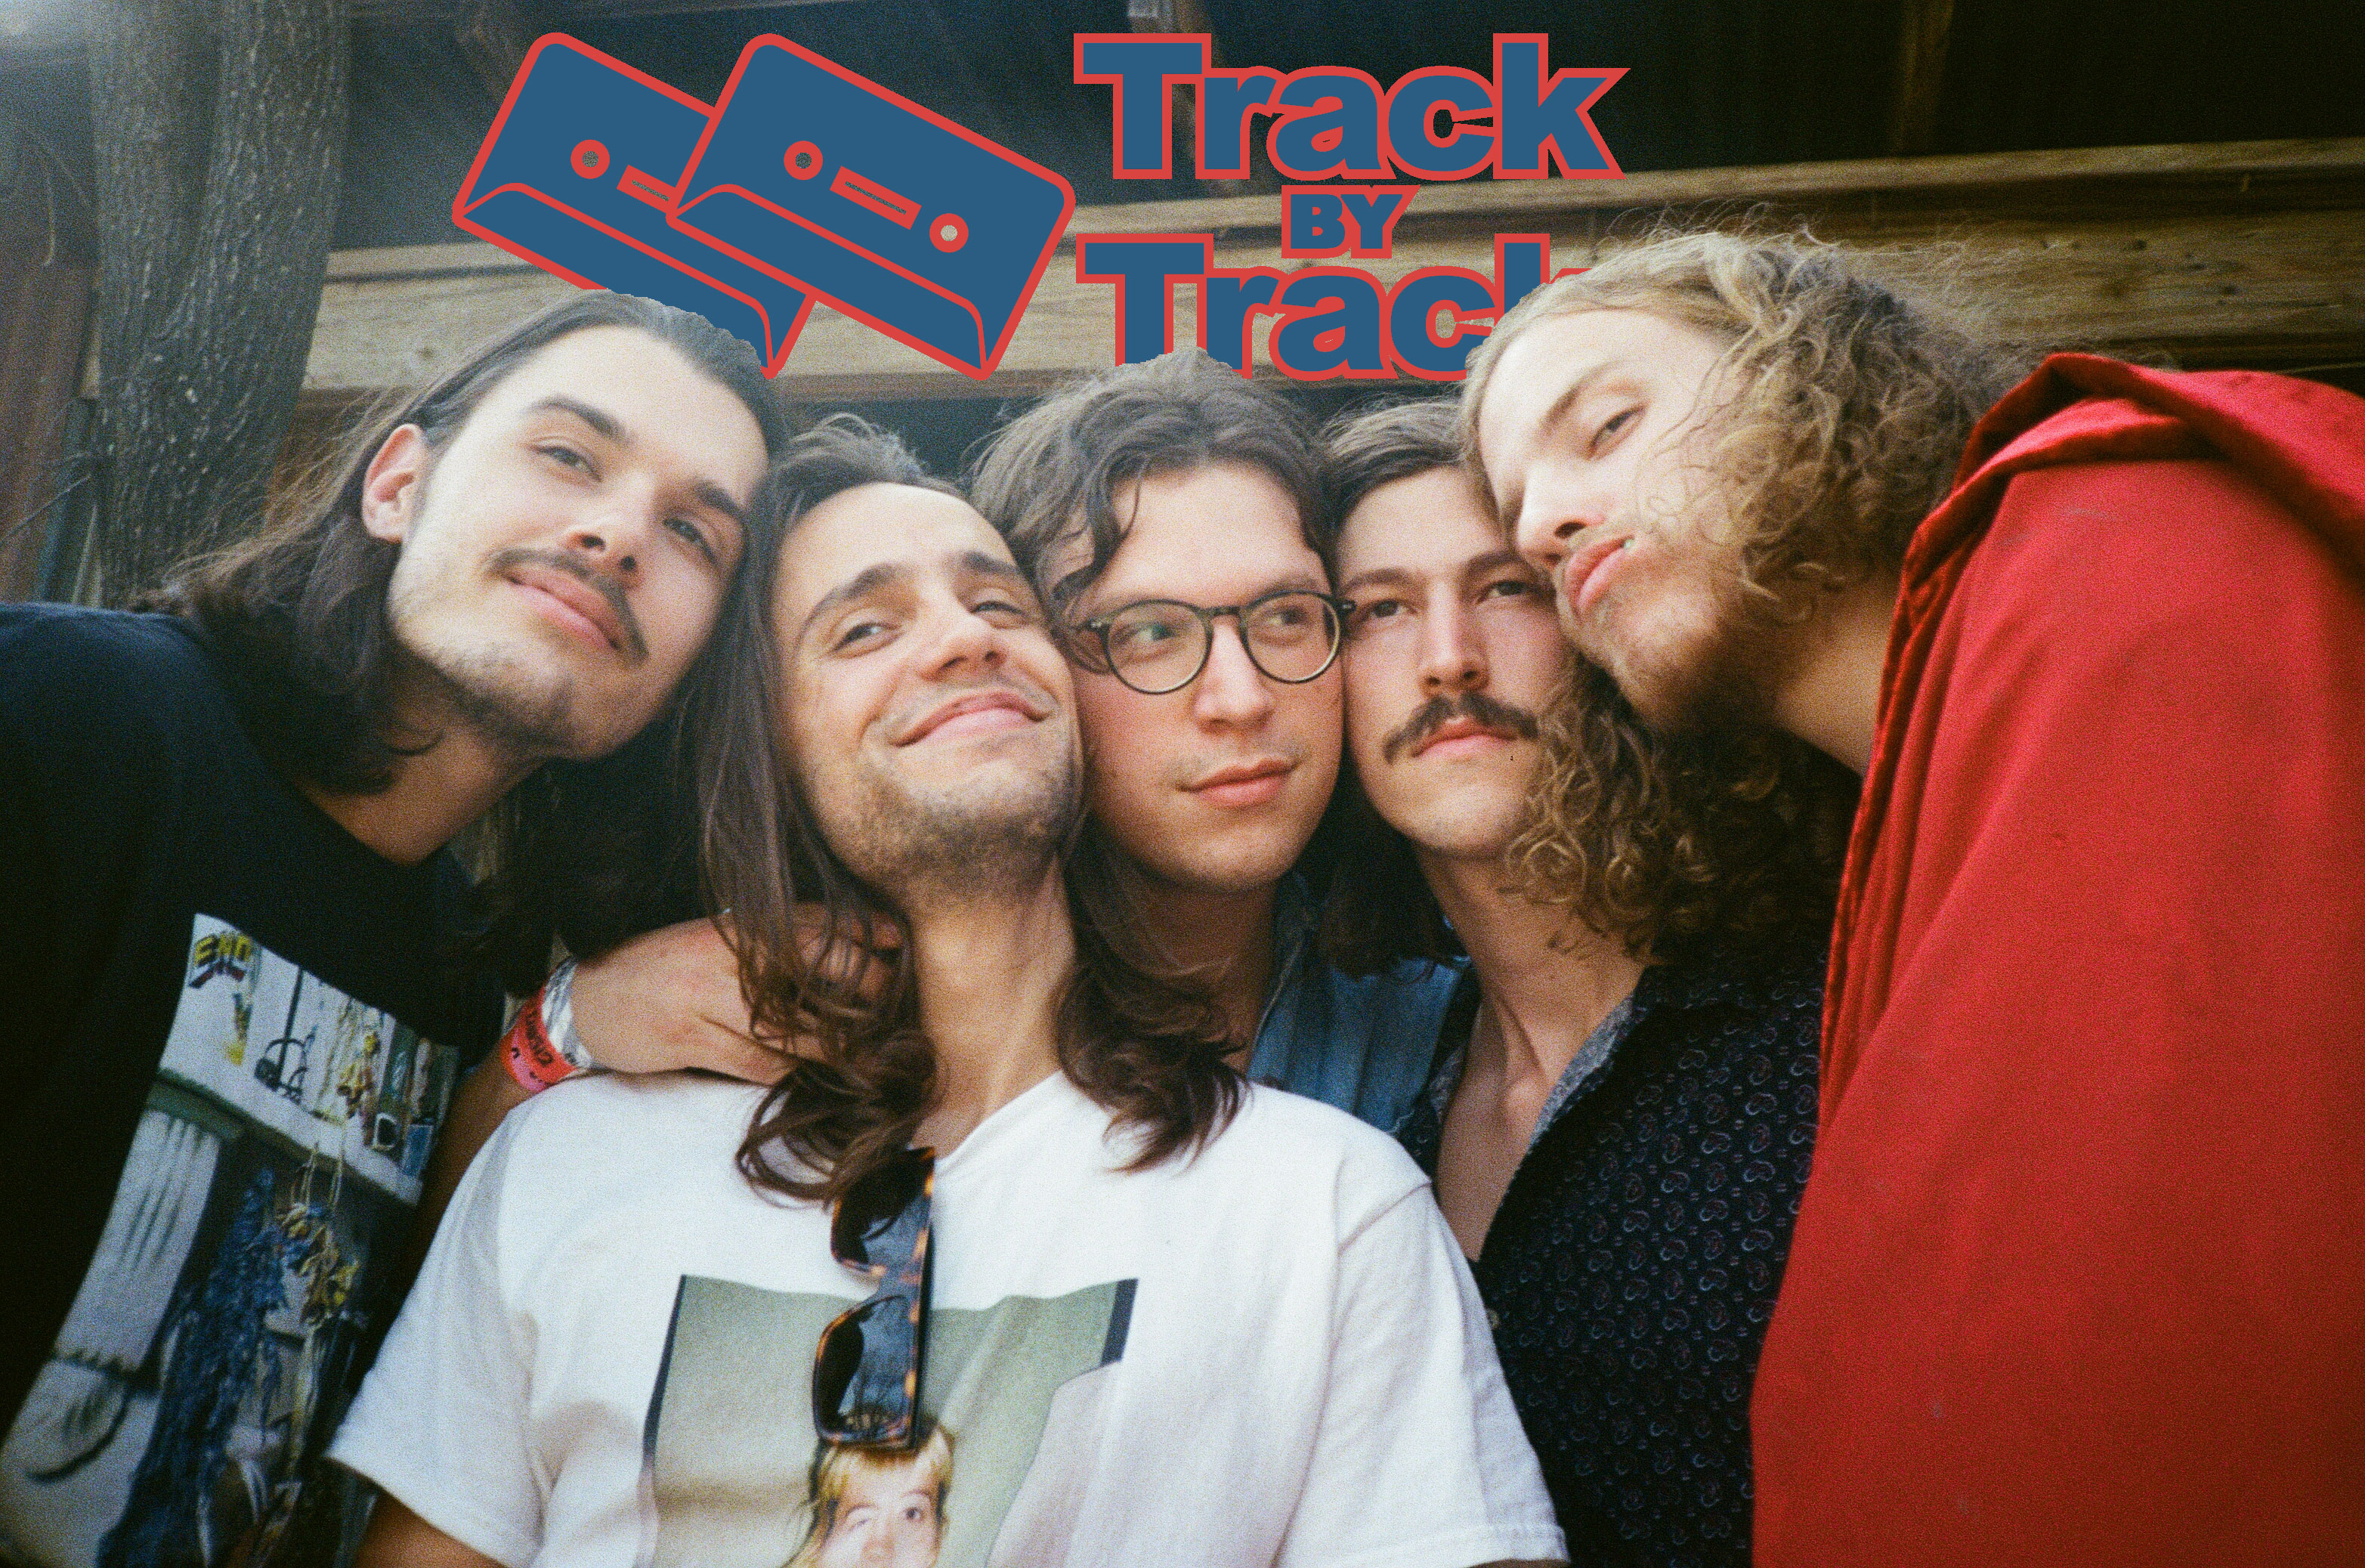 Post Animal Track by Track, photo by Emily Quirk